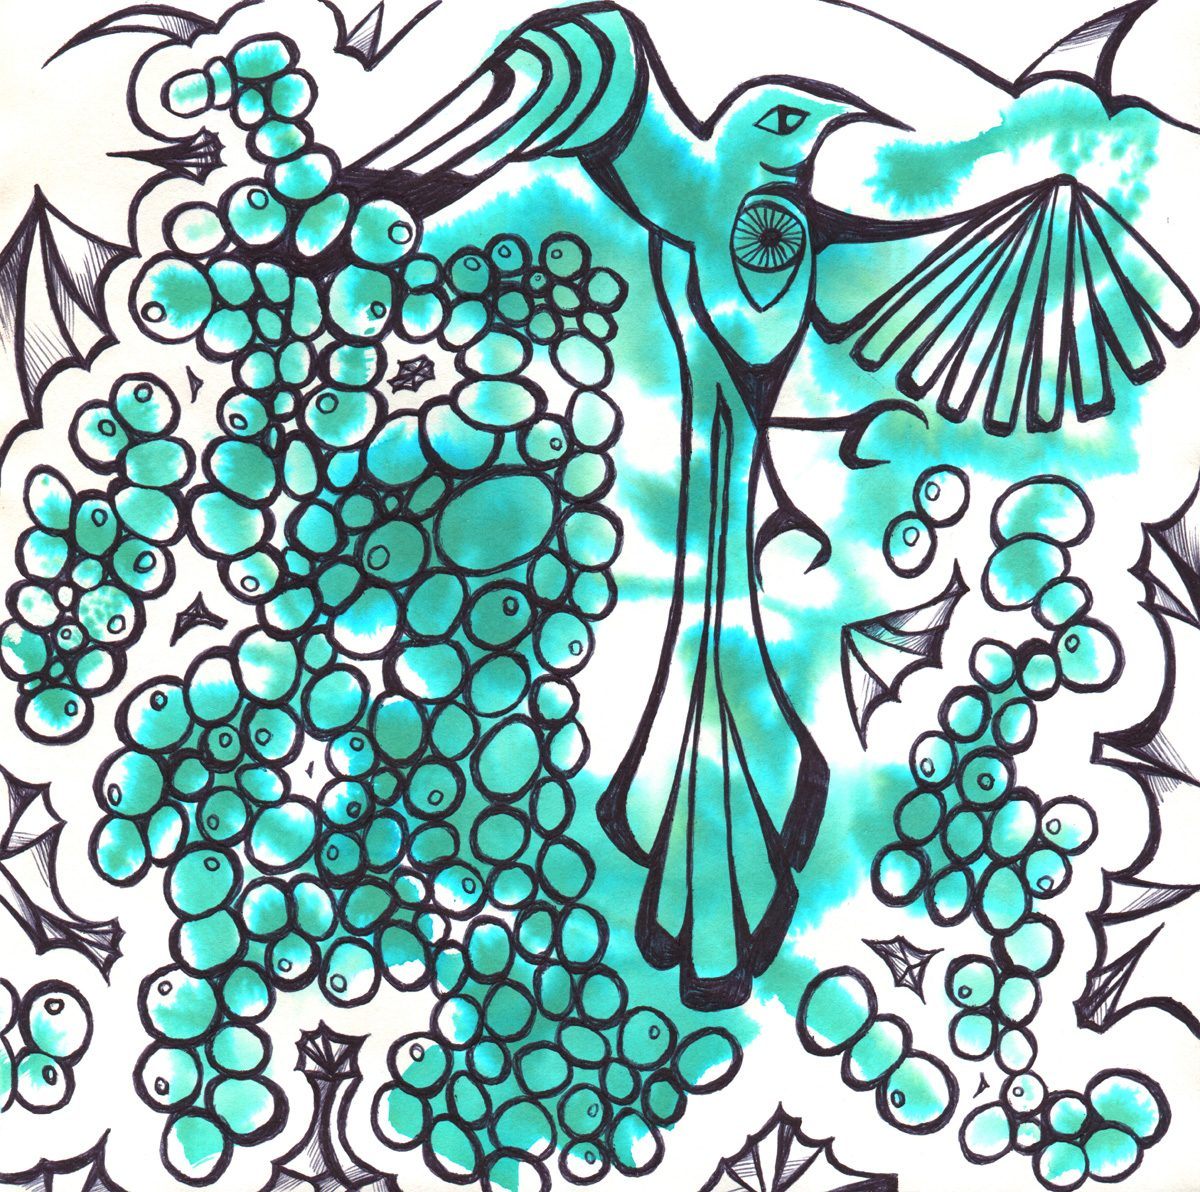 The image shows a piece of artwork by Jina Wallwork. It is an ink drawing of a bird. Stylistically this piece of artwork has links with expressionsim.